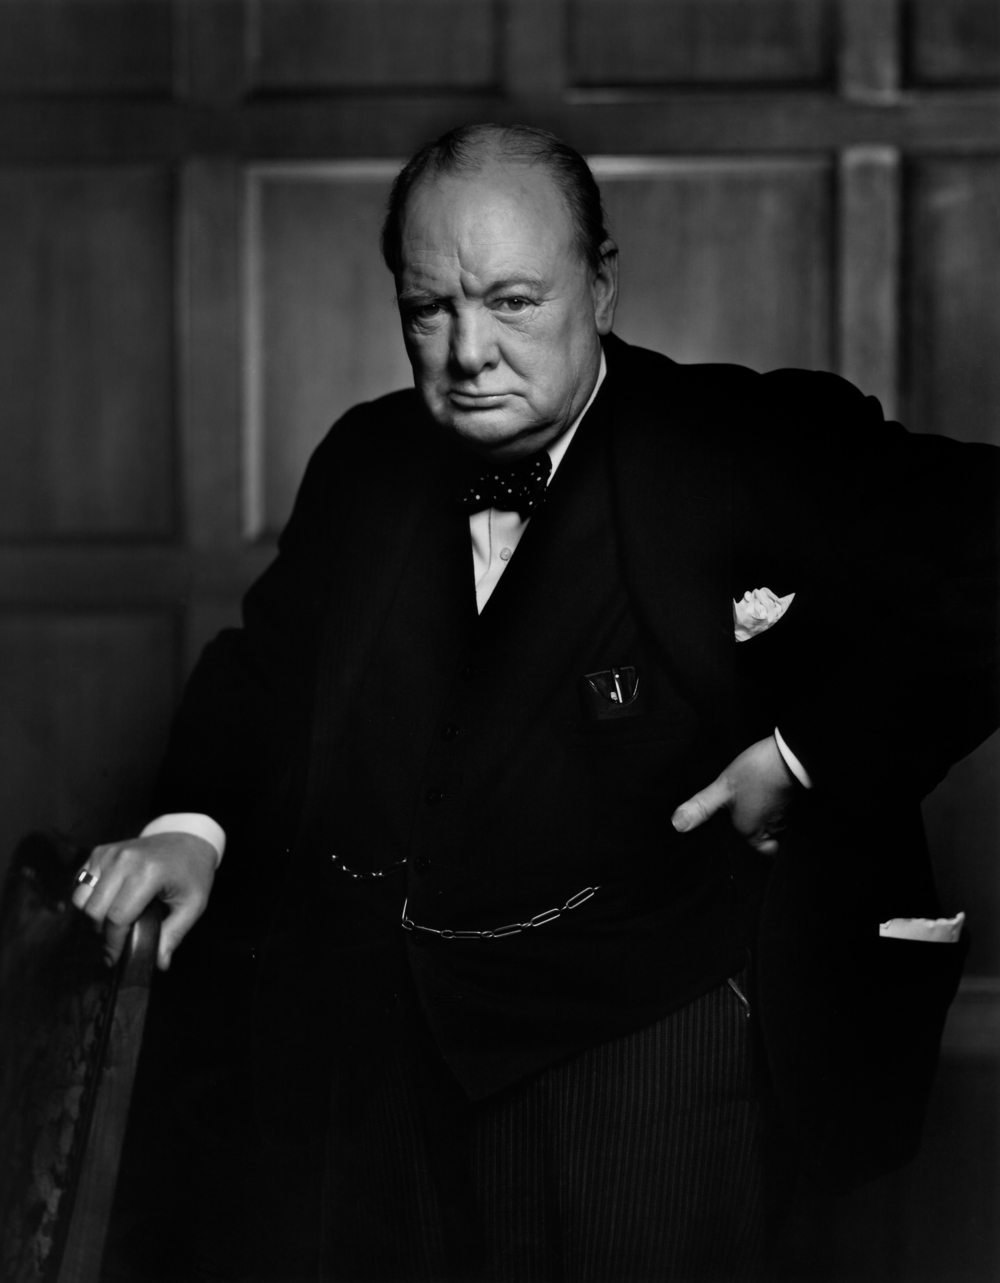 karsh_winston-churchill.jpg